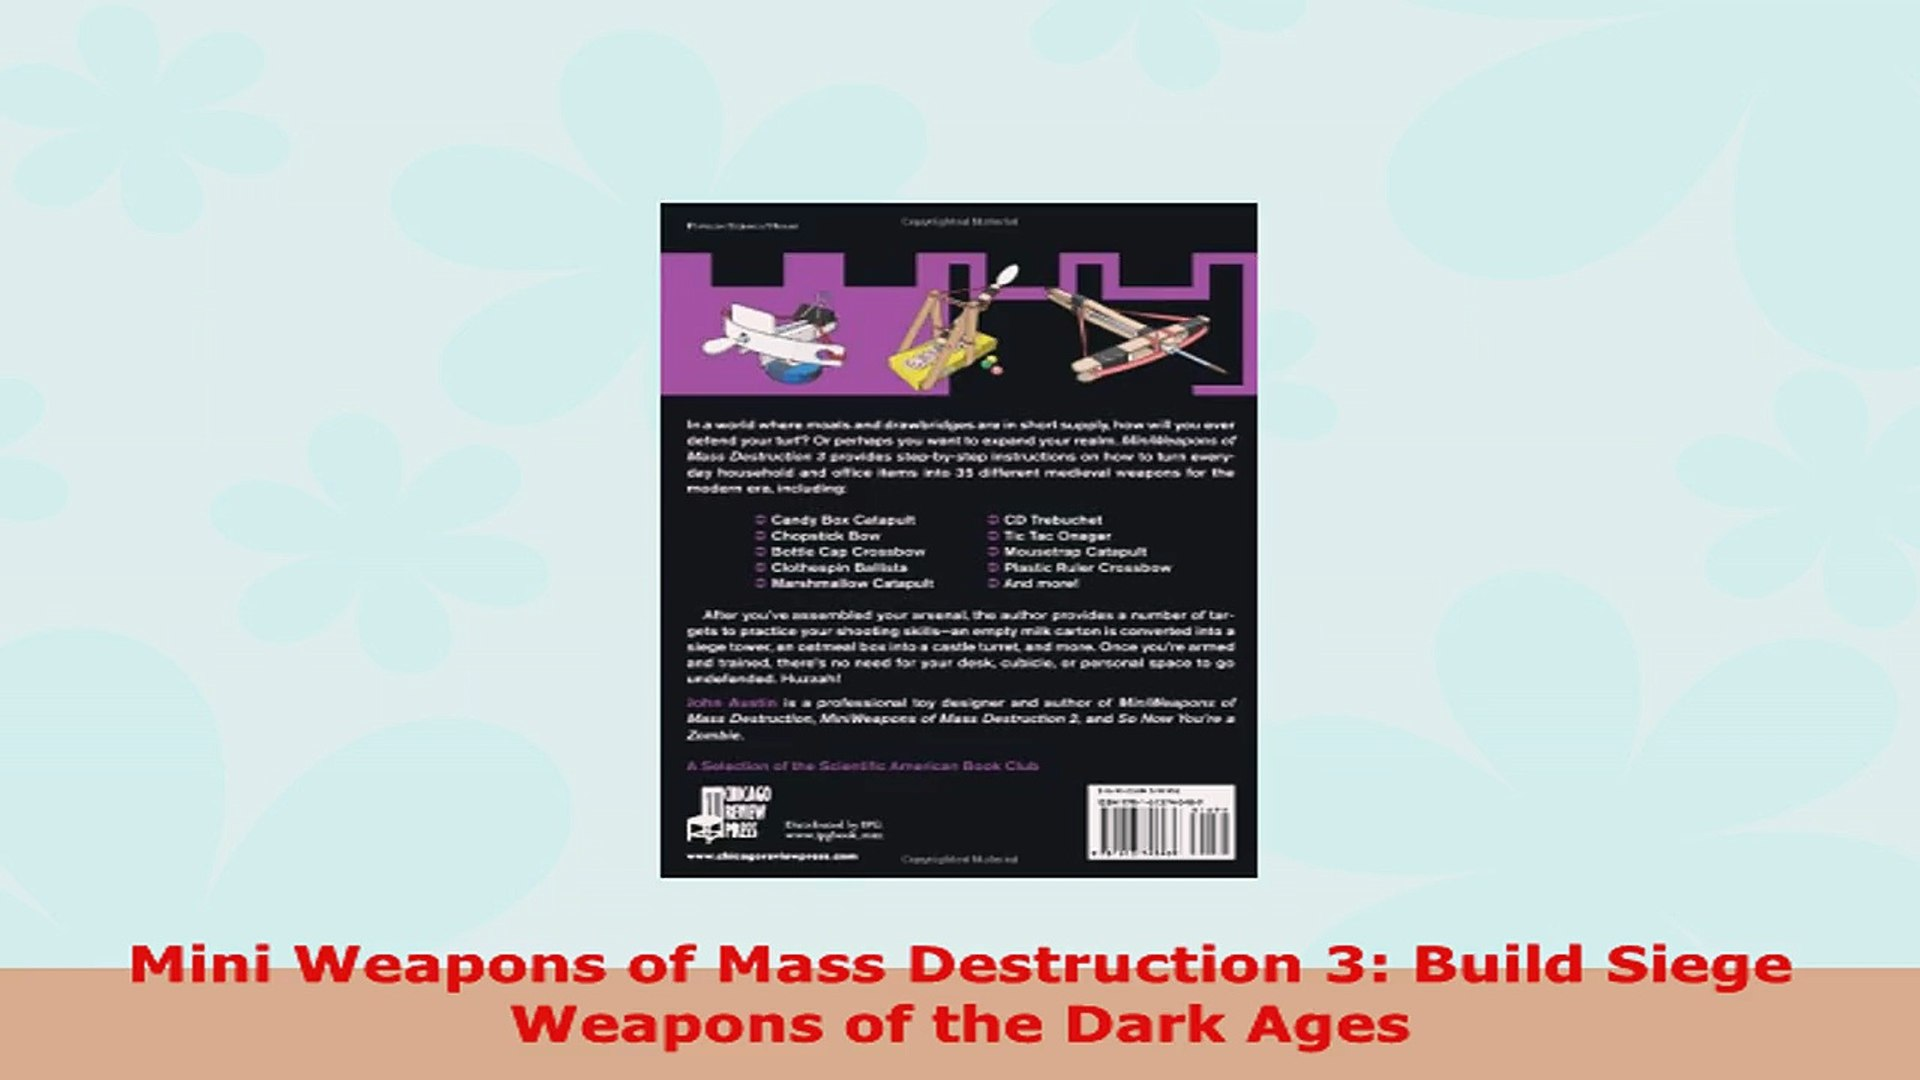 Read  Mini Weapons of Mass Destruction 3 Build Siege Weapons of the Dark Ages PDF book f18c62f1